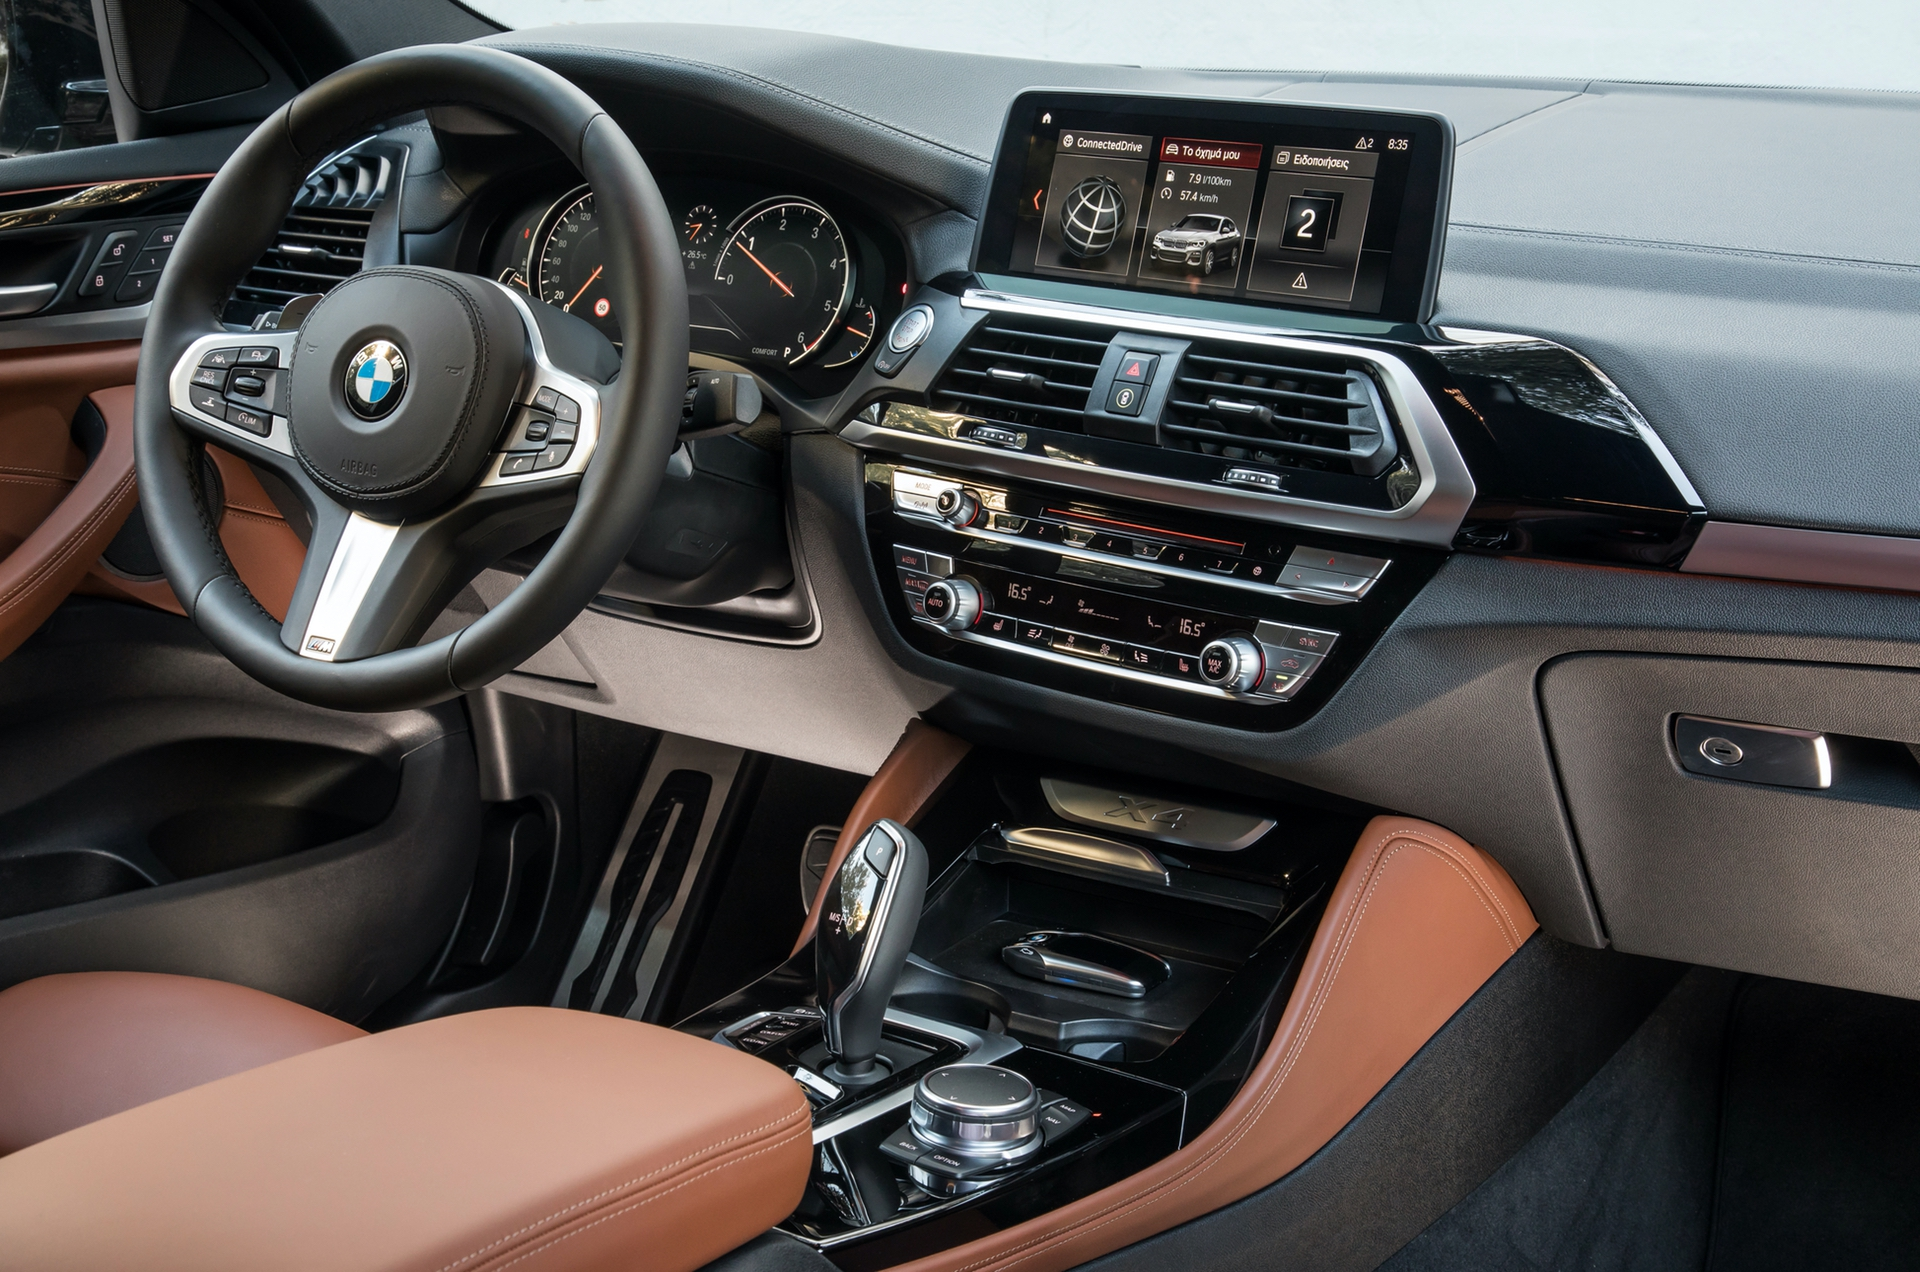 BMW_X4_greek_presskit_0105